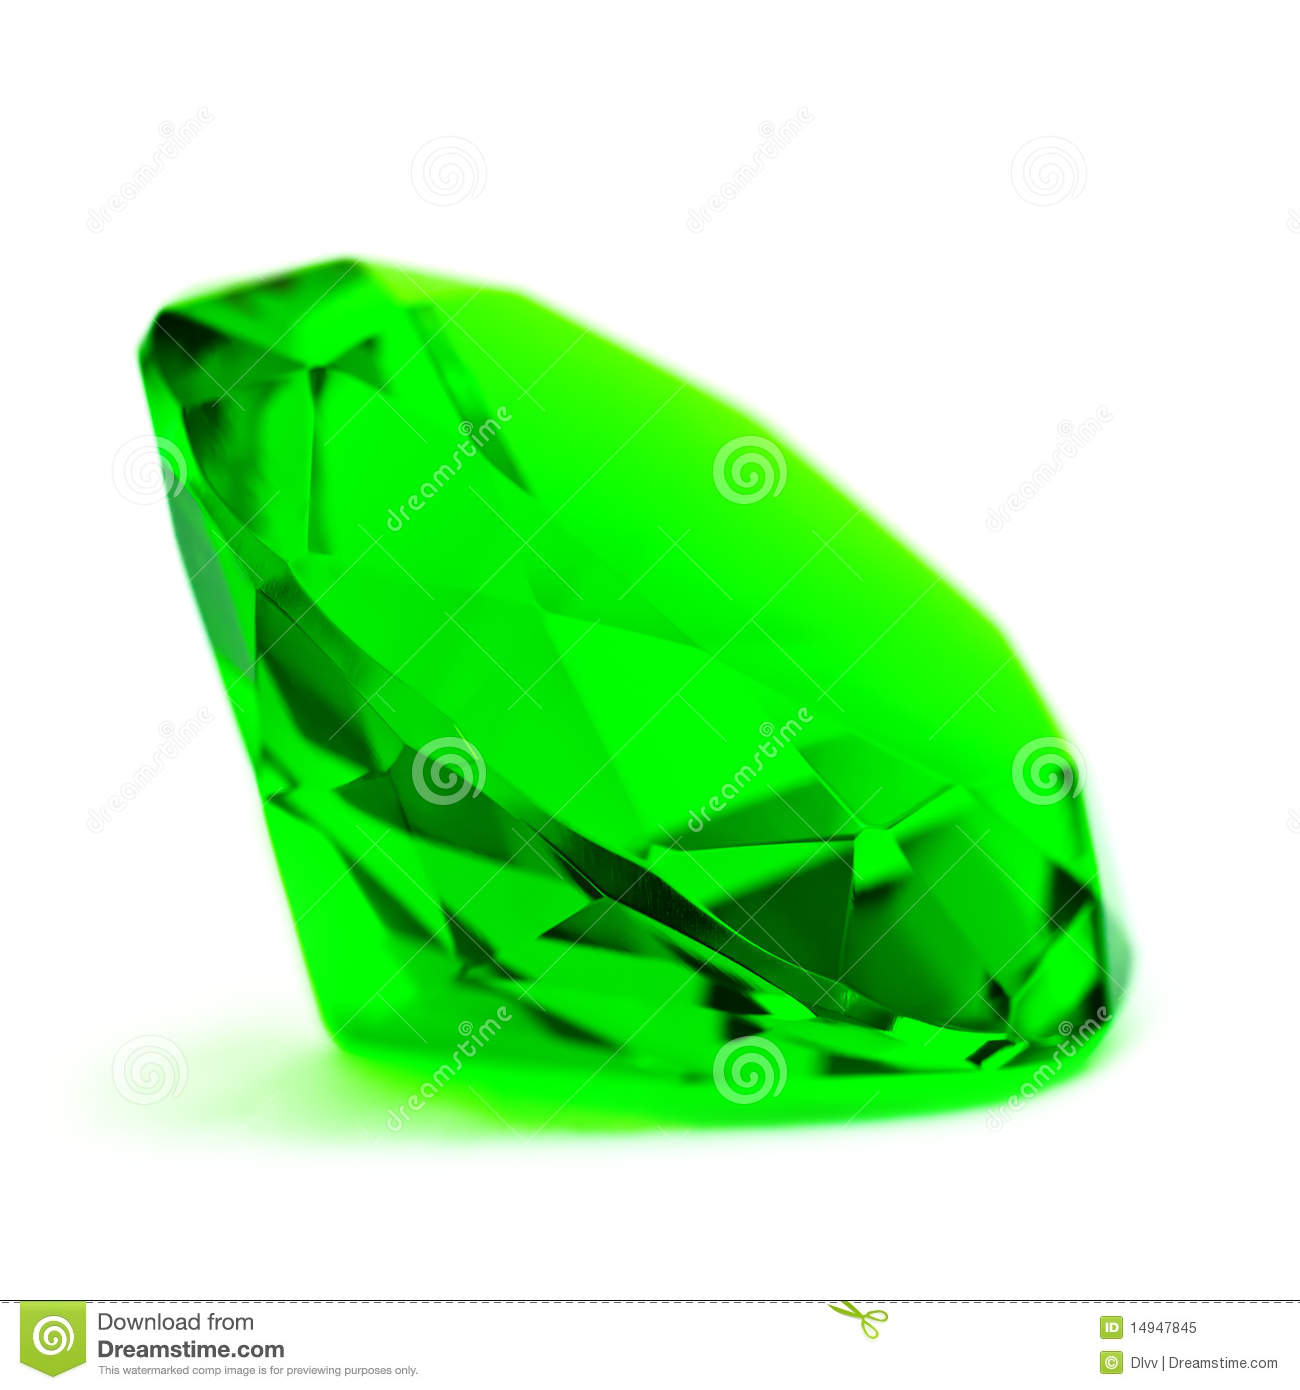 motion emerald gem video background stone videoblocks loop spinning wedding gemstone njn green